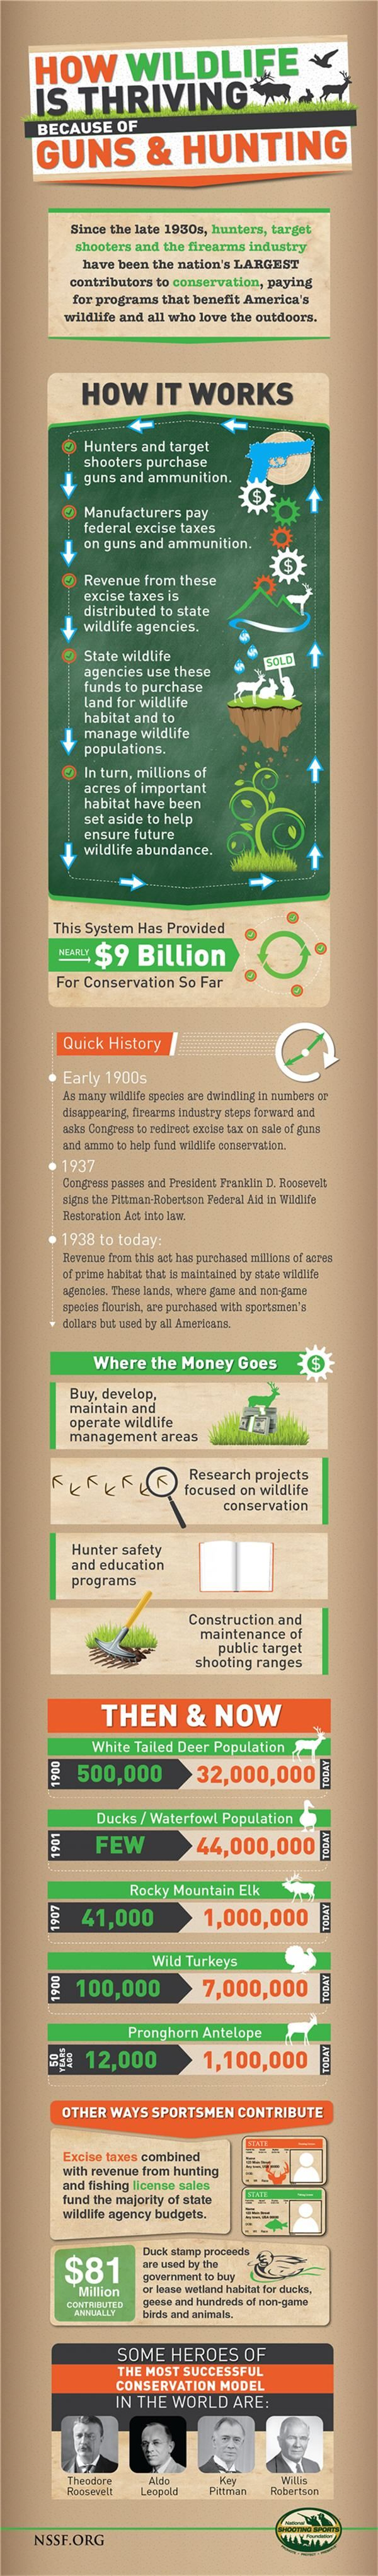 The North American Model of Wildlife Management makes conservation a commercially viable endeavor with a huge public support base that would otherwise not exist. For more information google seven sister of wildlife management - foundational principles of the model that allowed these systems to exist.